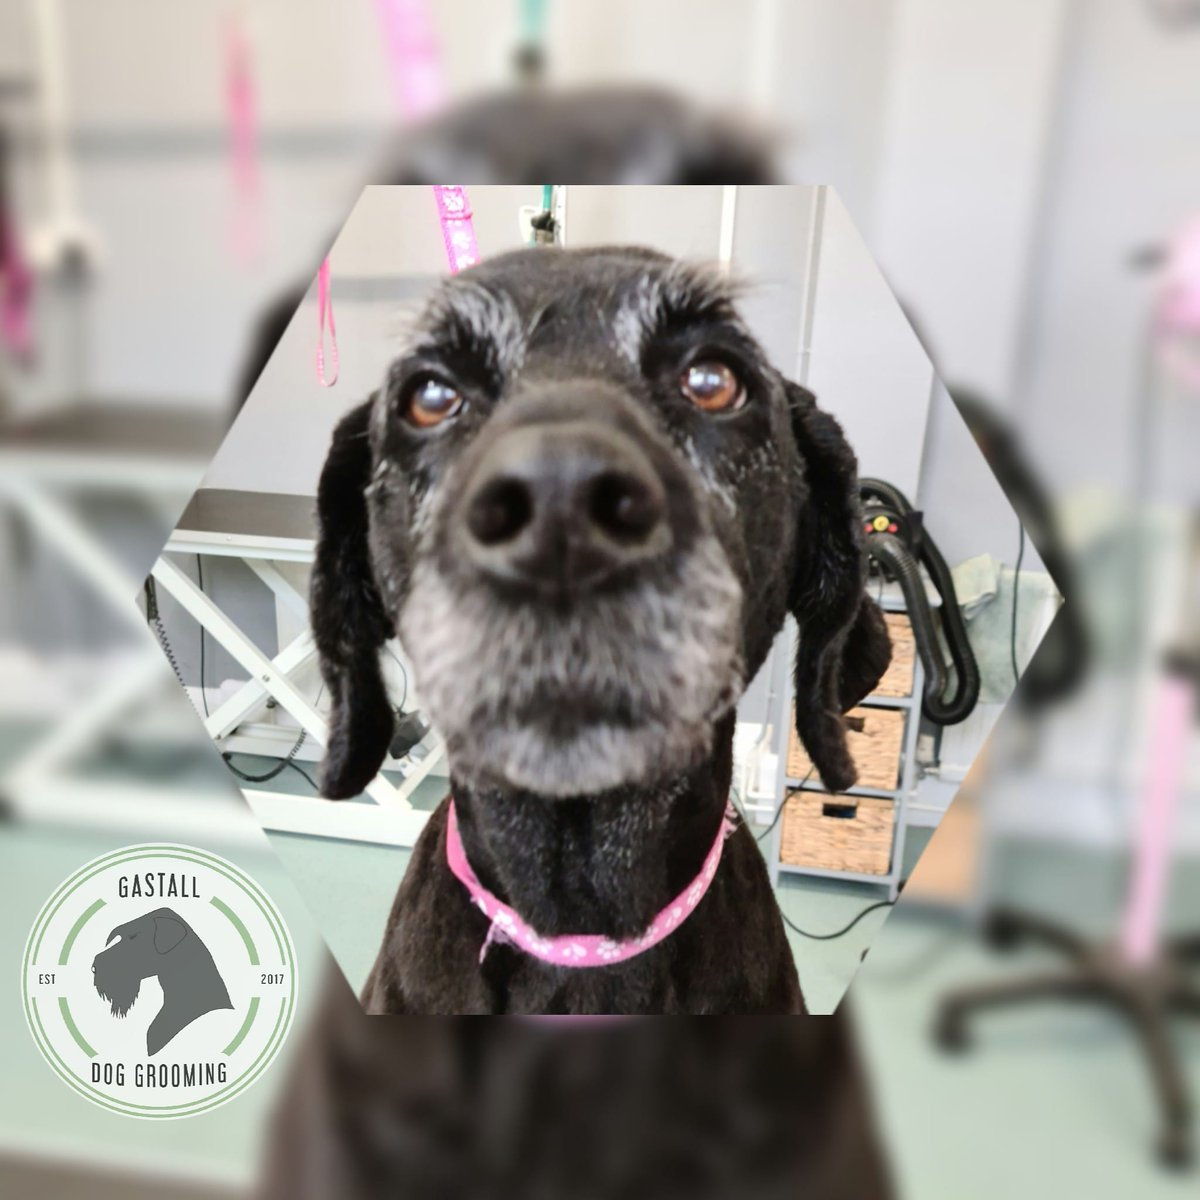 Lovely Luna... she's a nose ahead of the rest 💜#gastalldoggrooming  #labradoodle #supportinglocalbusiness #doggrooming #leicestershiregroomer #kegworthvillage  #doggroomersnearme #dogfriendly #doggroomer #gastall #dogs #cutedogs #dogspa #smallbusinessowner  #thehomeofthehound